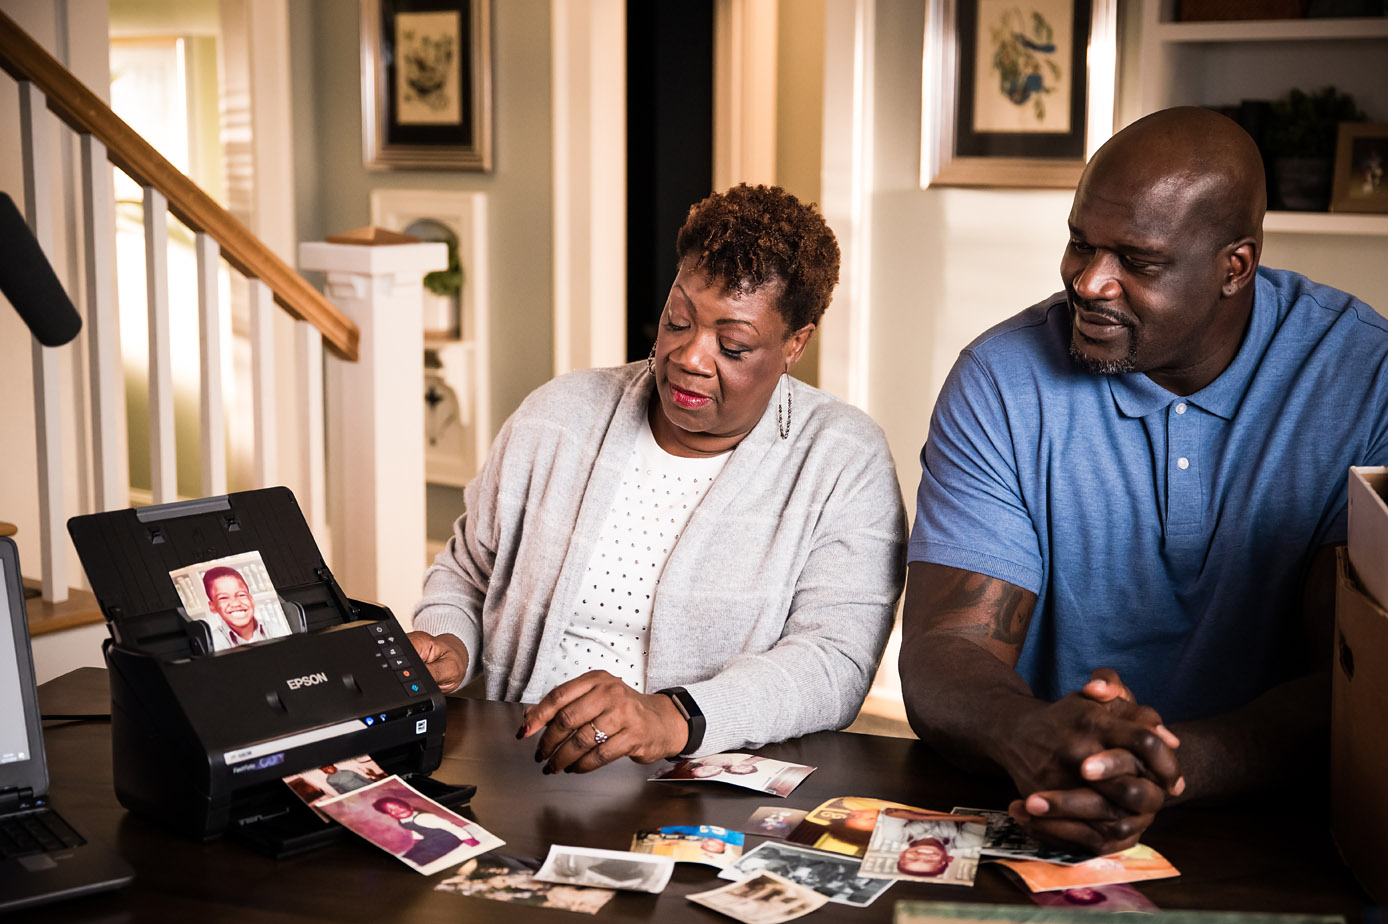 Lucille and Shaquille O'Neal easily and quickly convert cherished photographs to digital with the Epson FastFoto